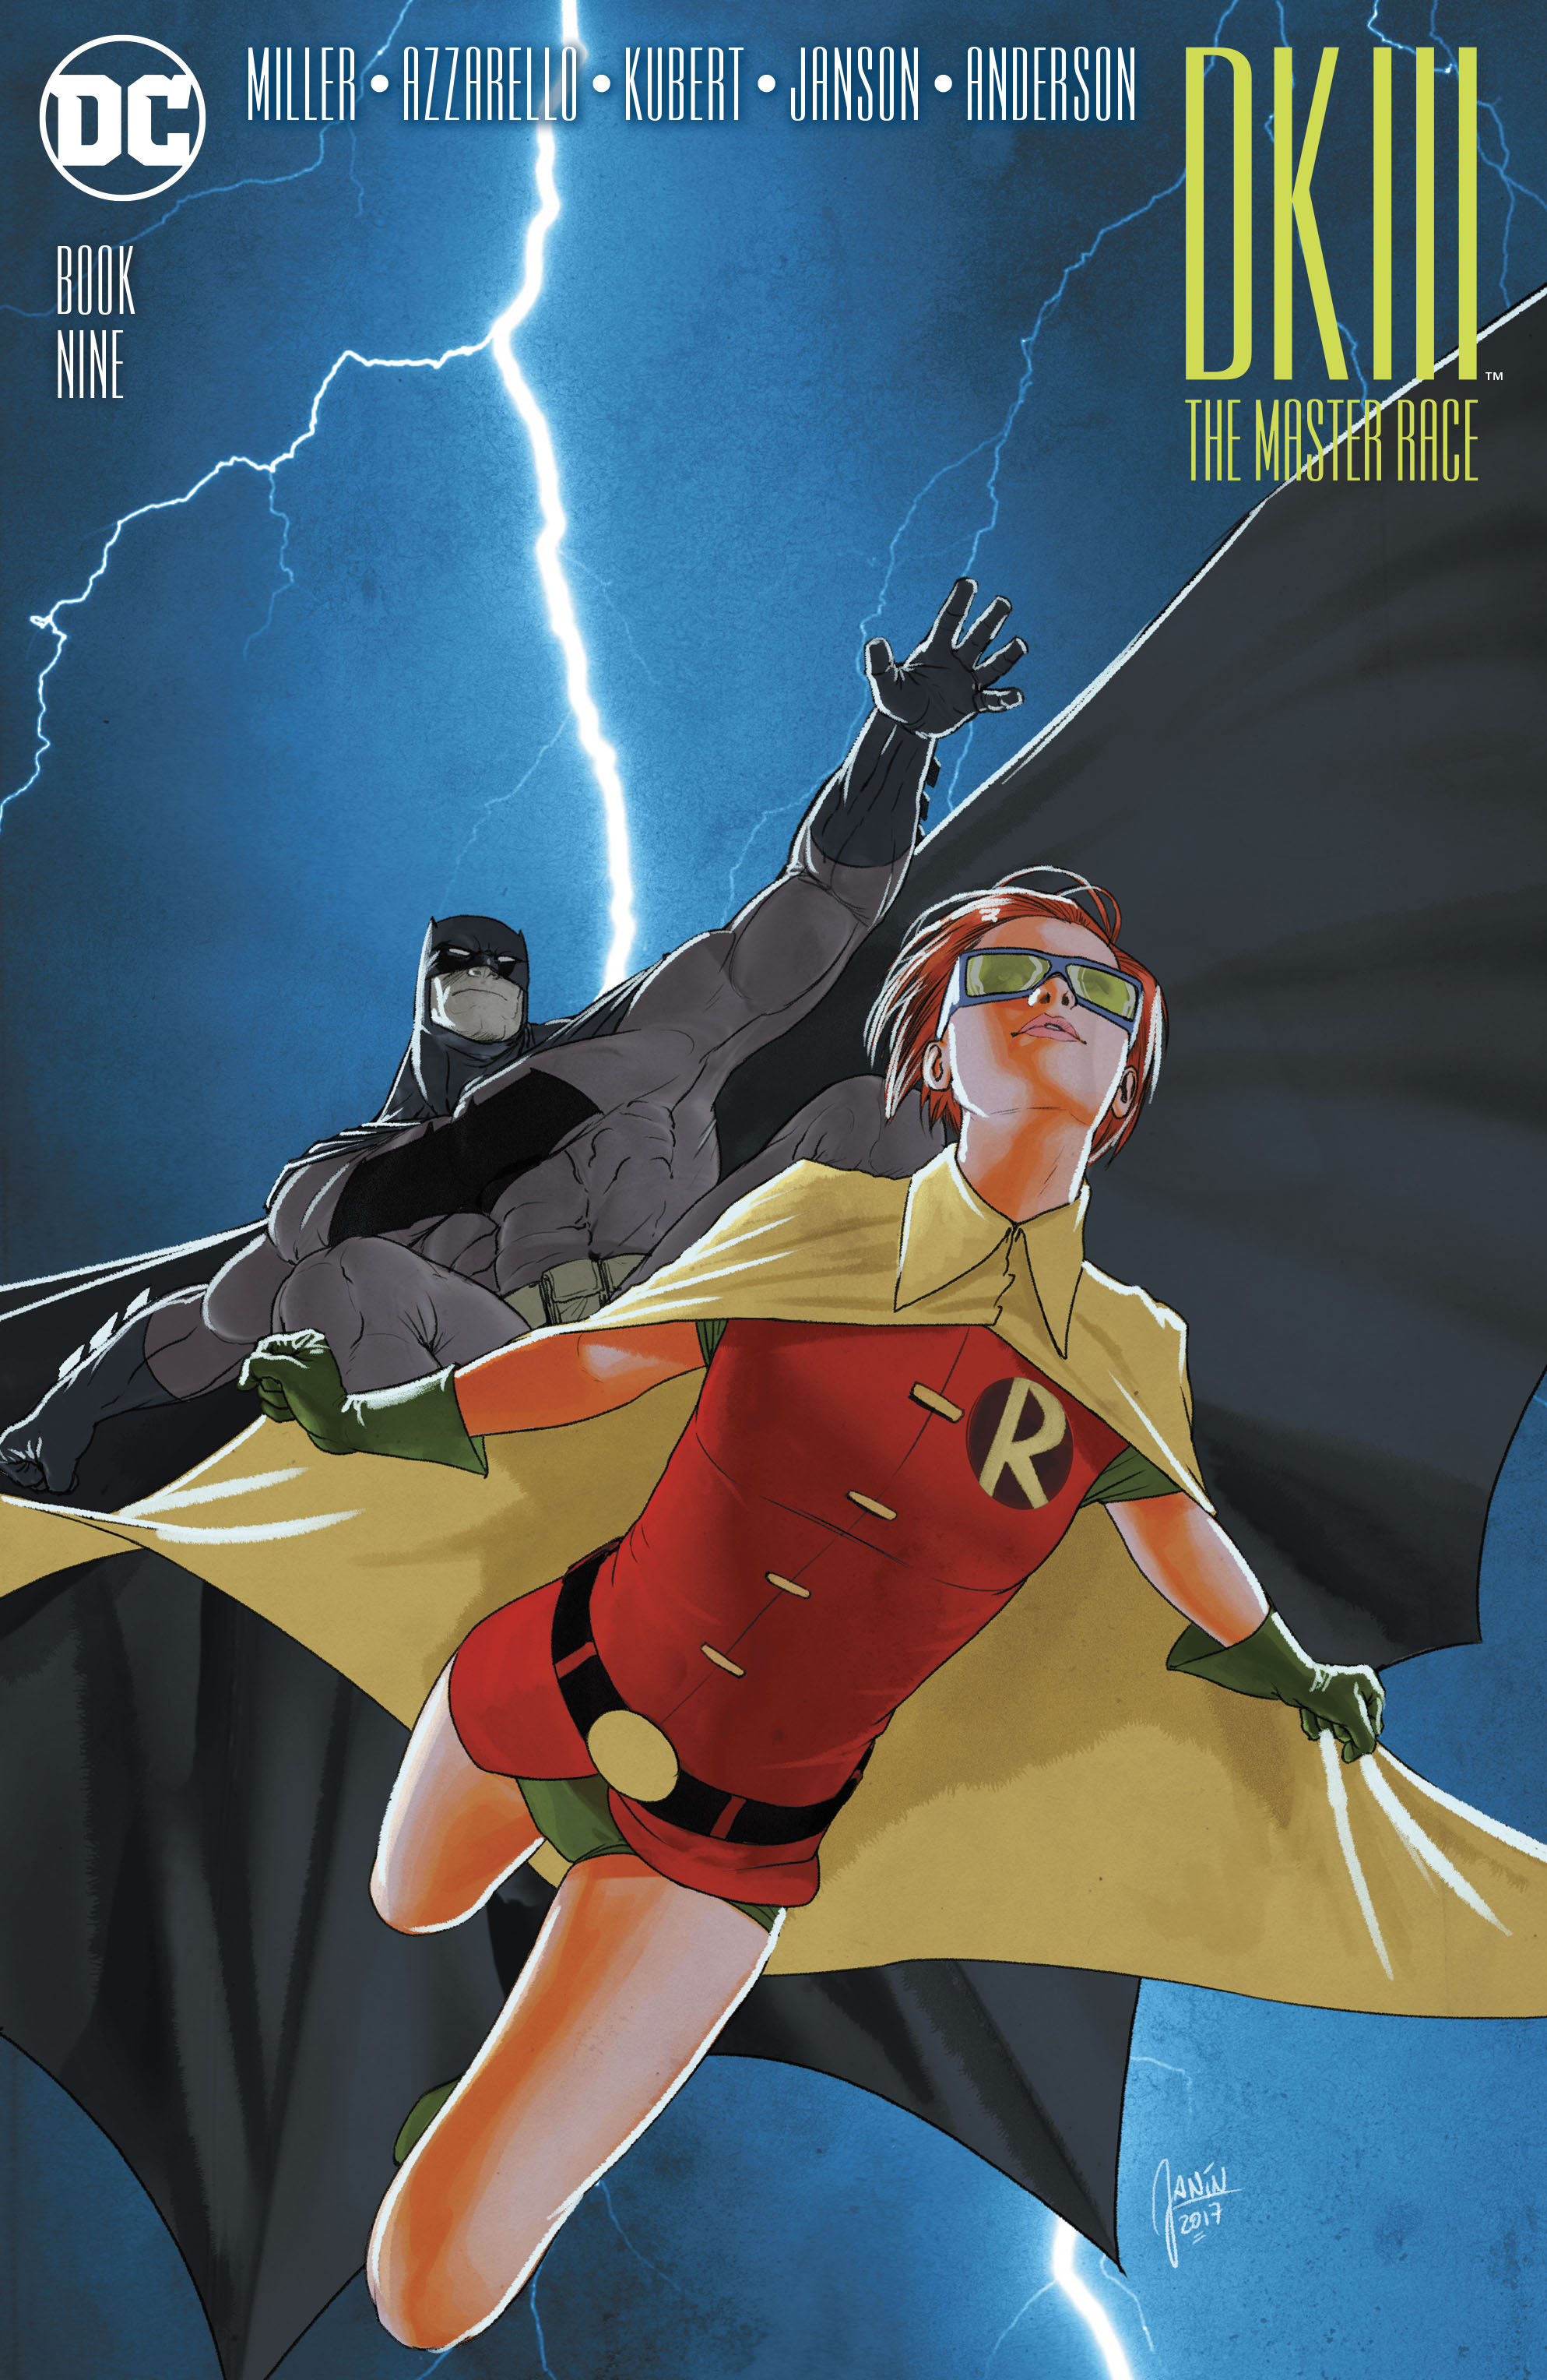 Read online Dark Knight III: The Master Race comic -  Issue #9 - 3